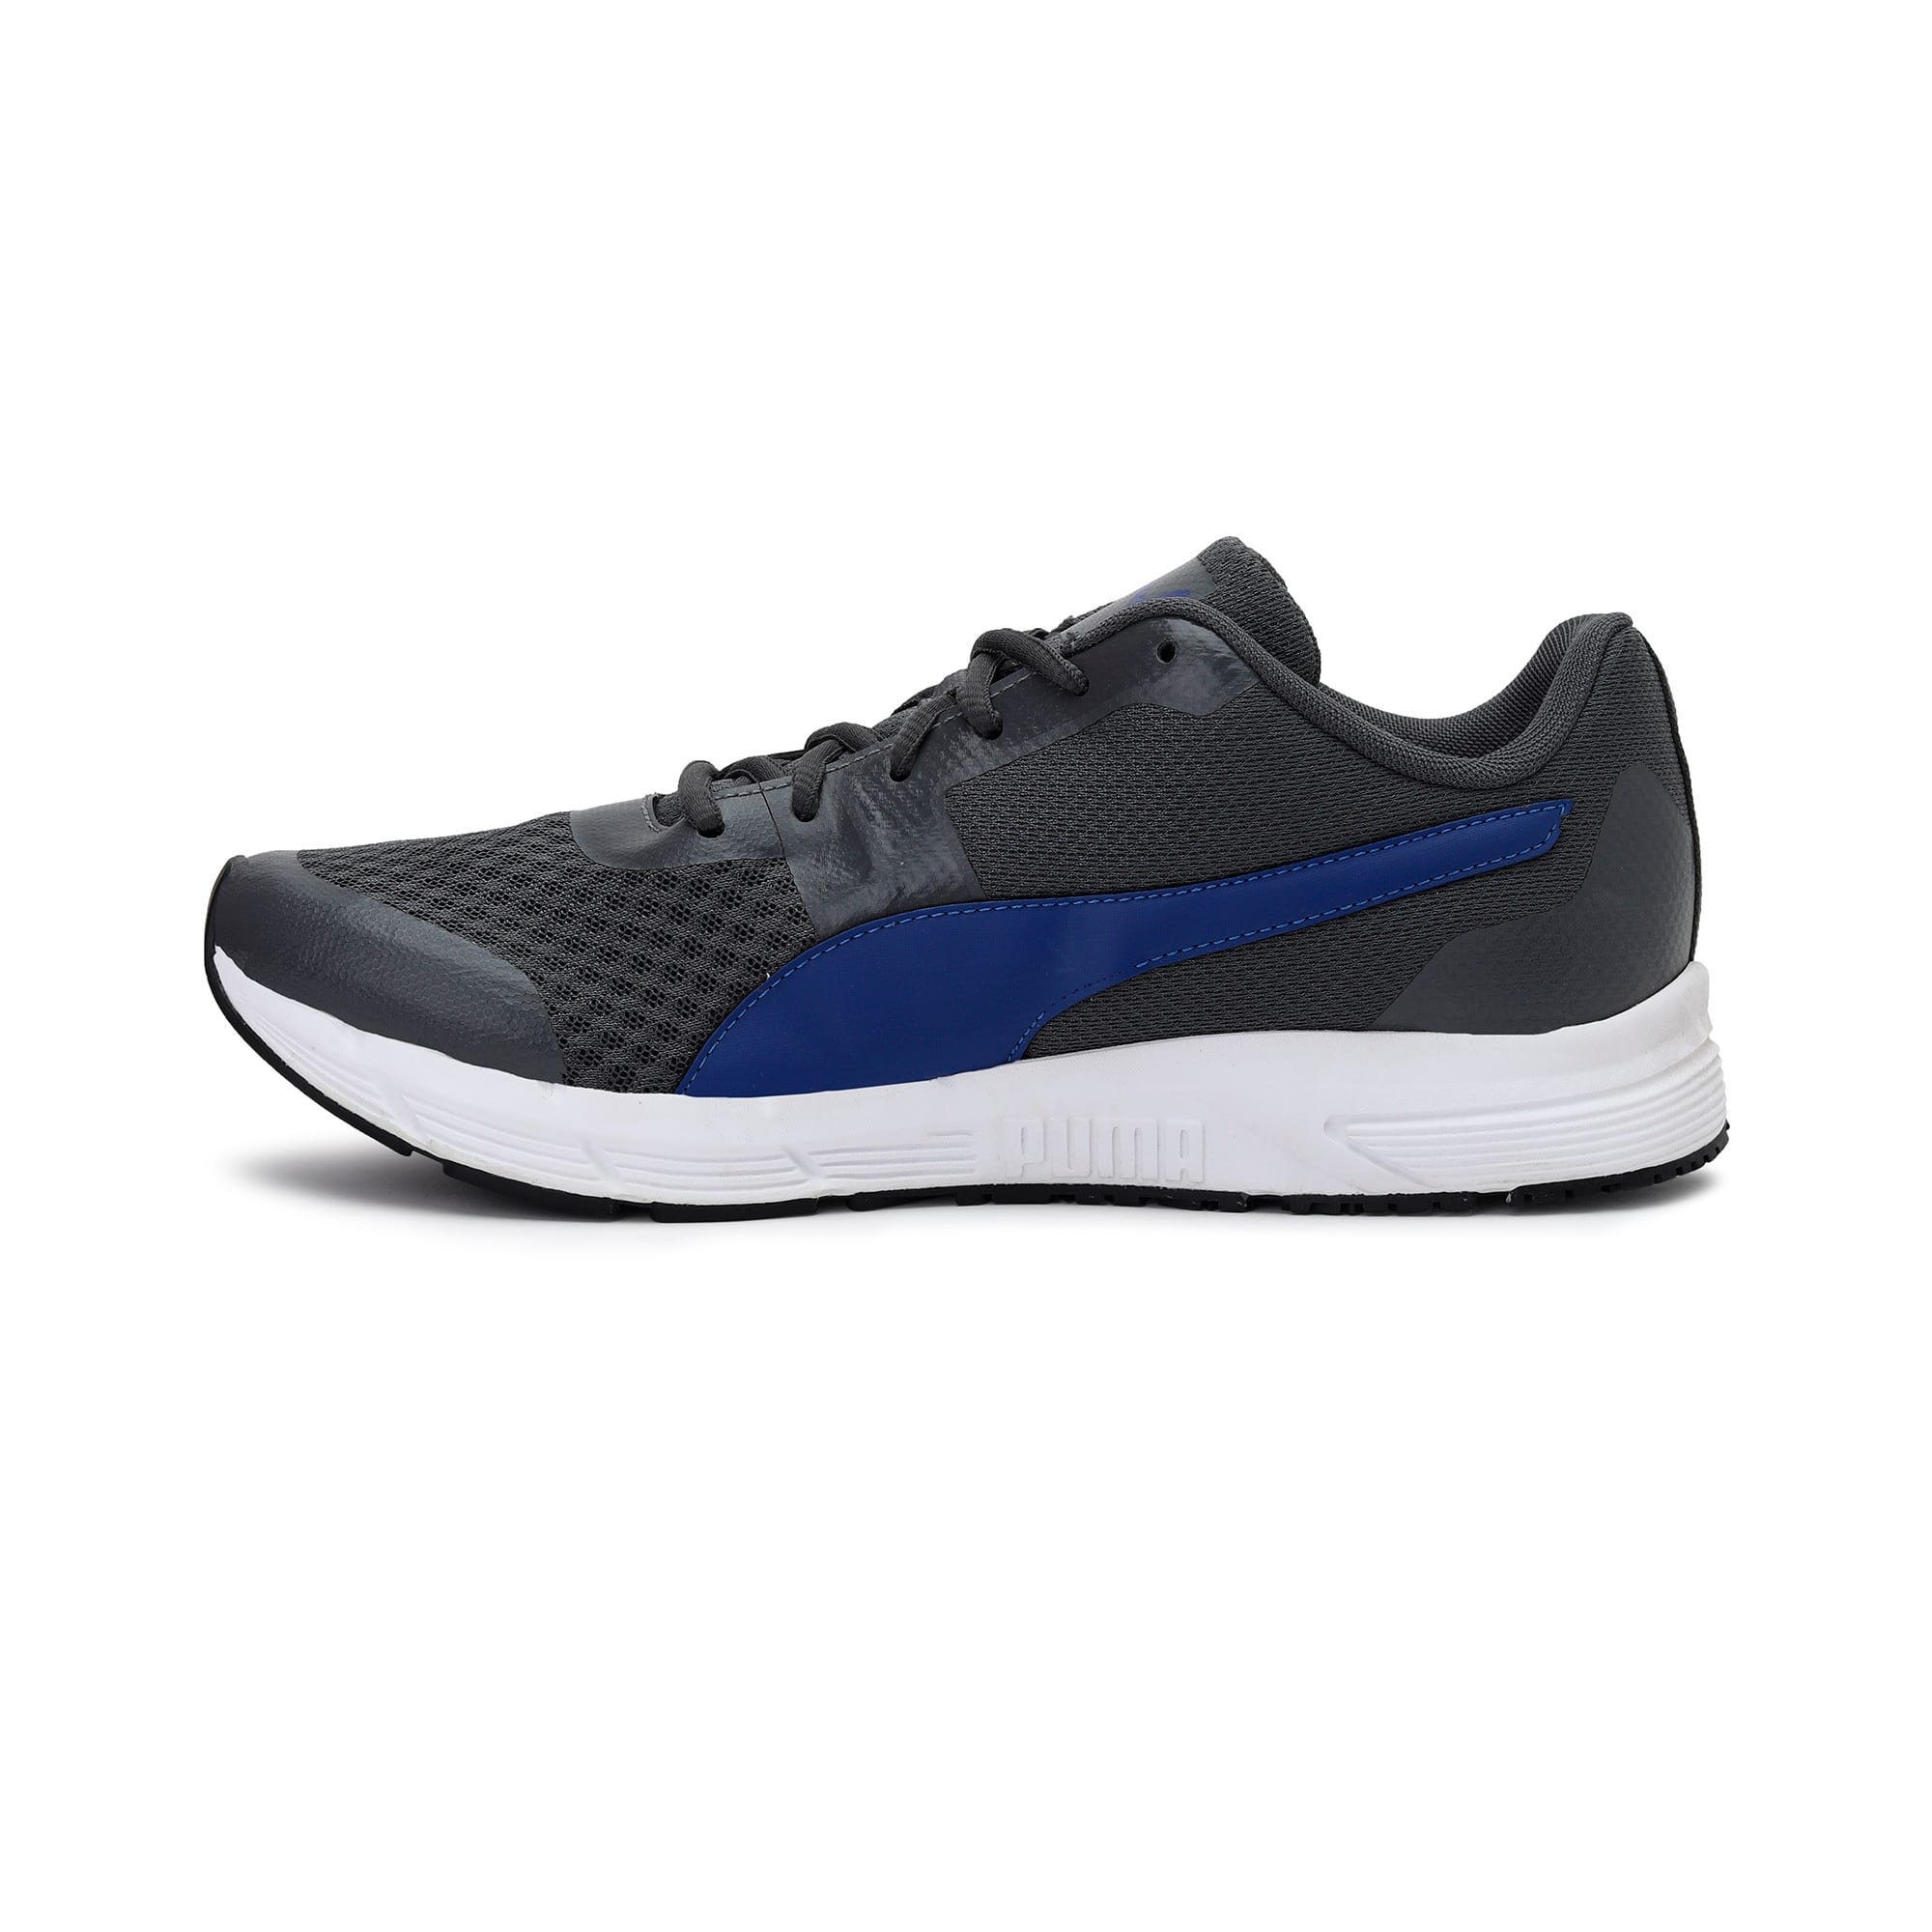 Thumbnail 1 of Progression IDP Puma White-Puma Black, PWhite-PBlk-In Gate-SiteBlue, medium-IND